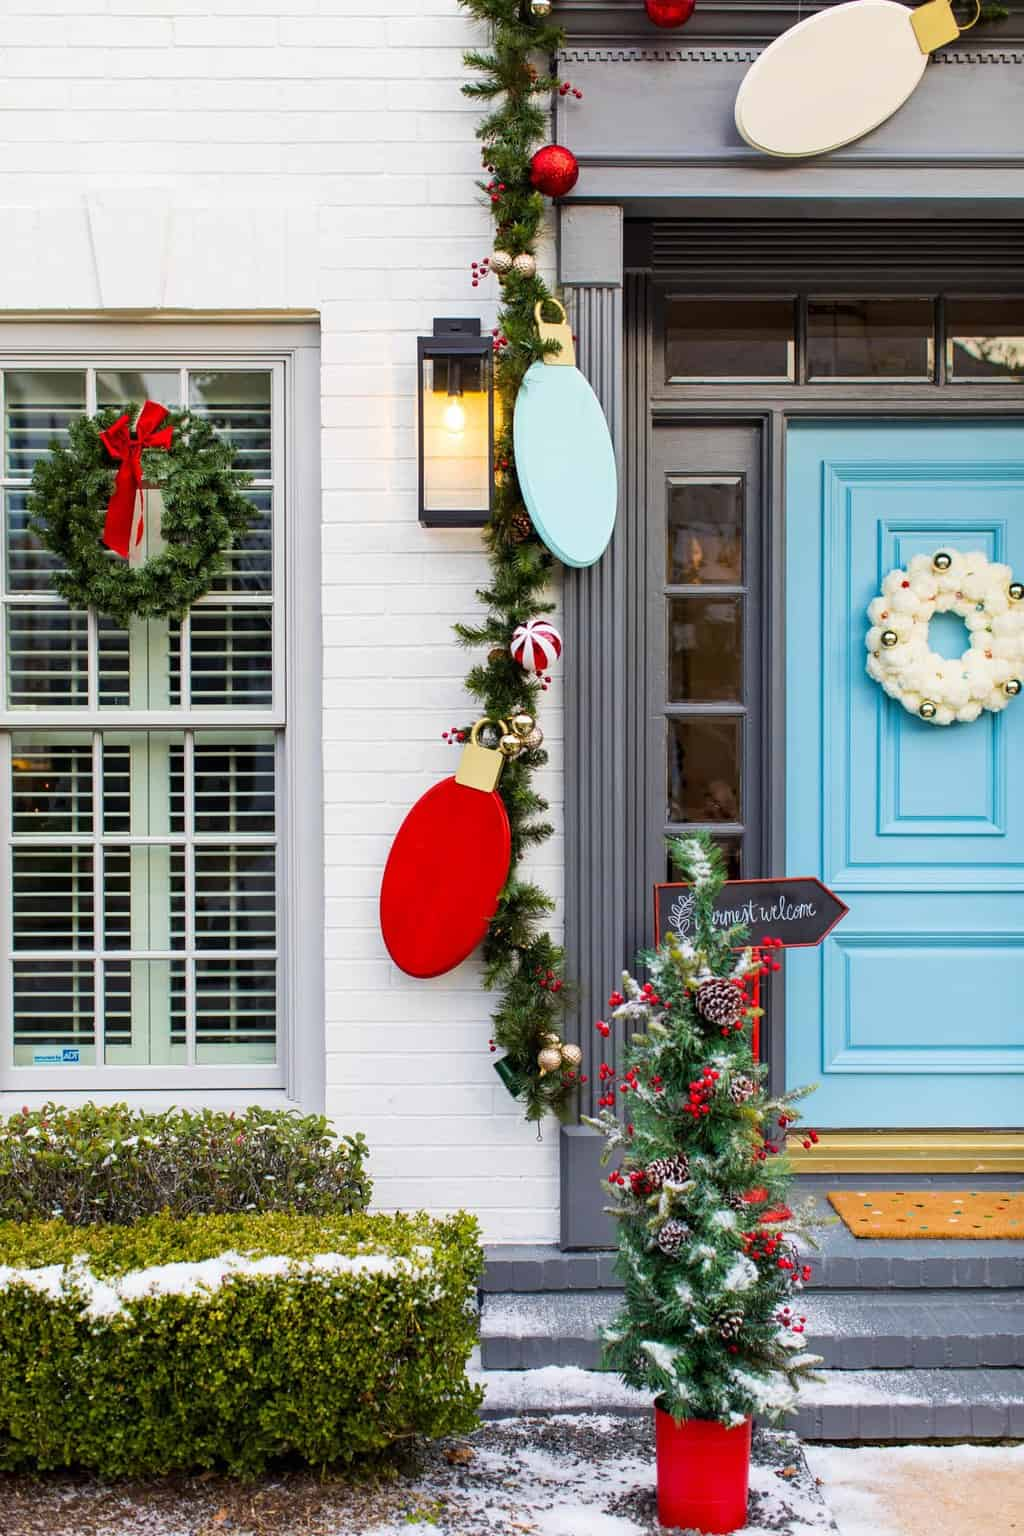 Outdoor Christmas Door Decorations: DIY Wood Lights ...